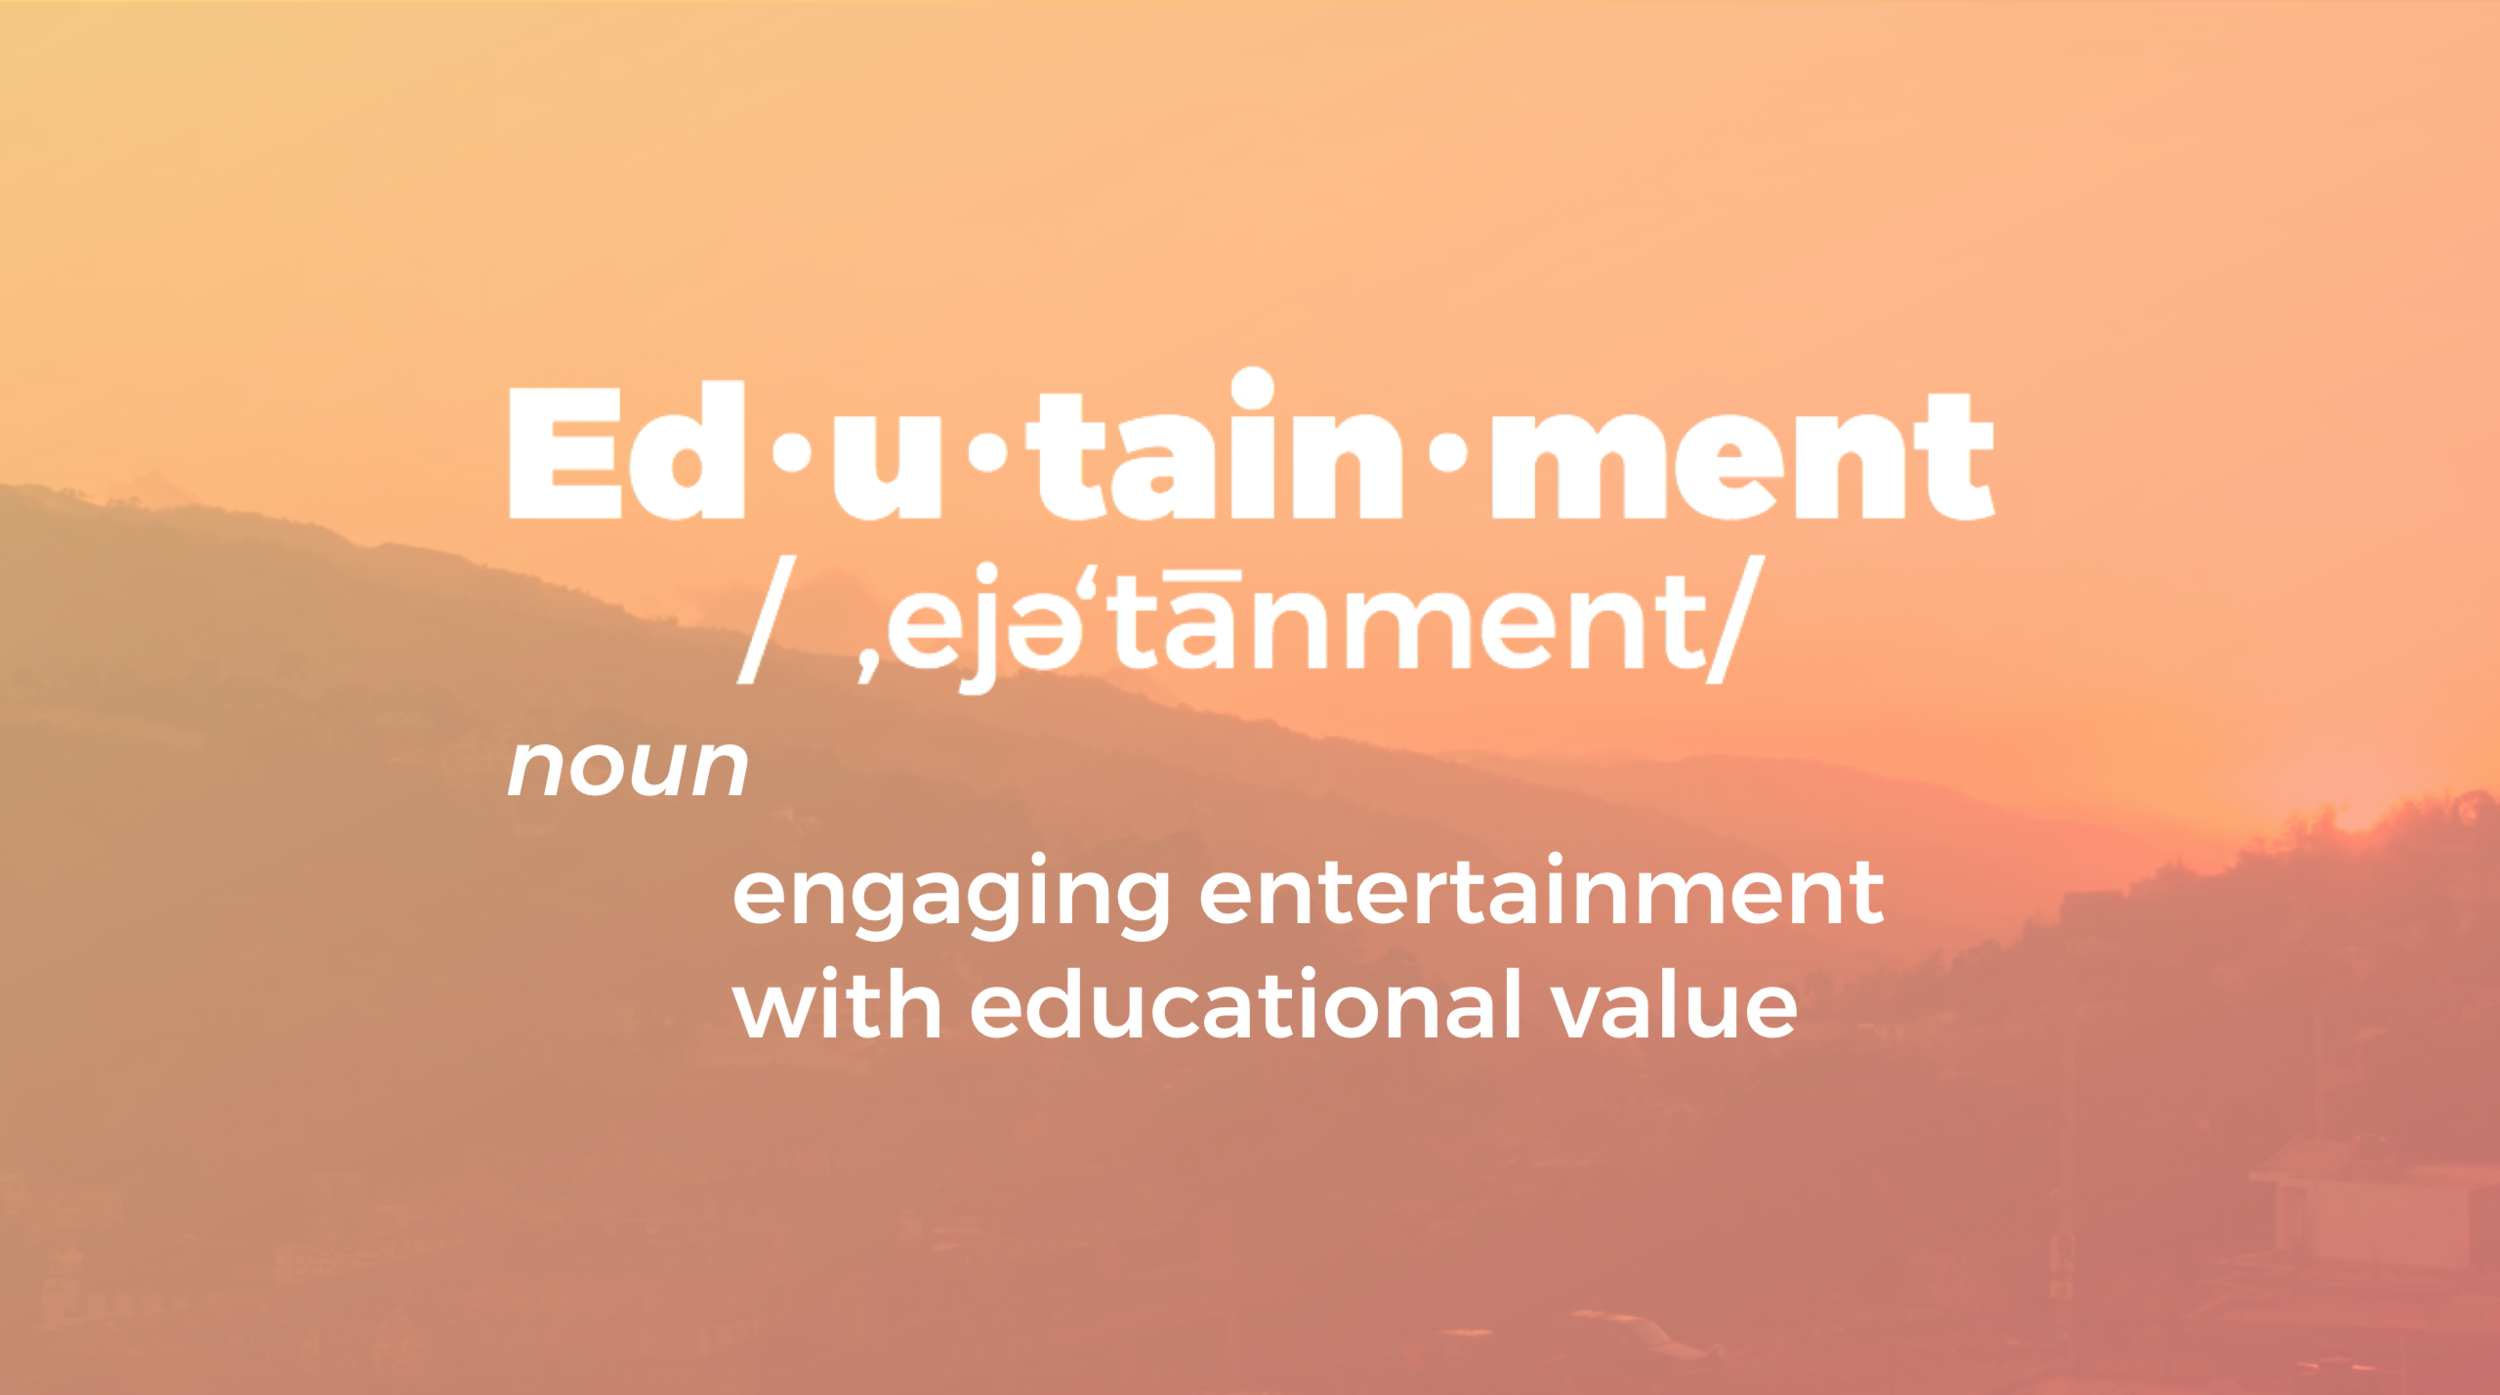 """Edutainment is the currency of the learning economy. In order to engage and accelerate the adoption of new ideas, content must help to """"make it their idea."""" A push or telling approach to sharing information rarely is rumor worthy. However, when content allows for self-discovery, it pulls the audience in and allows for acceptance and reinvention."""